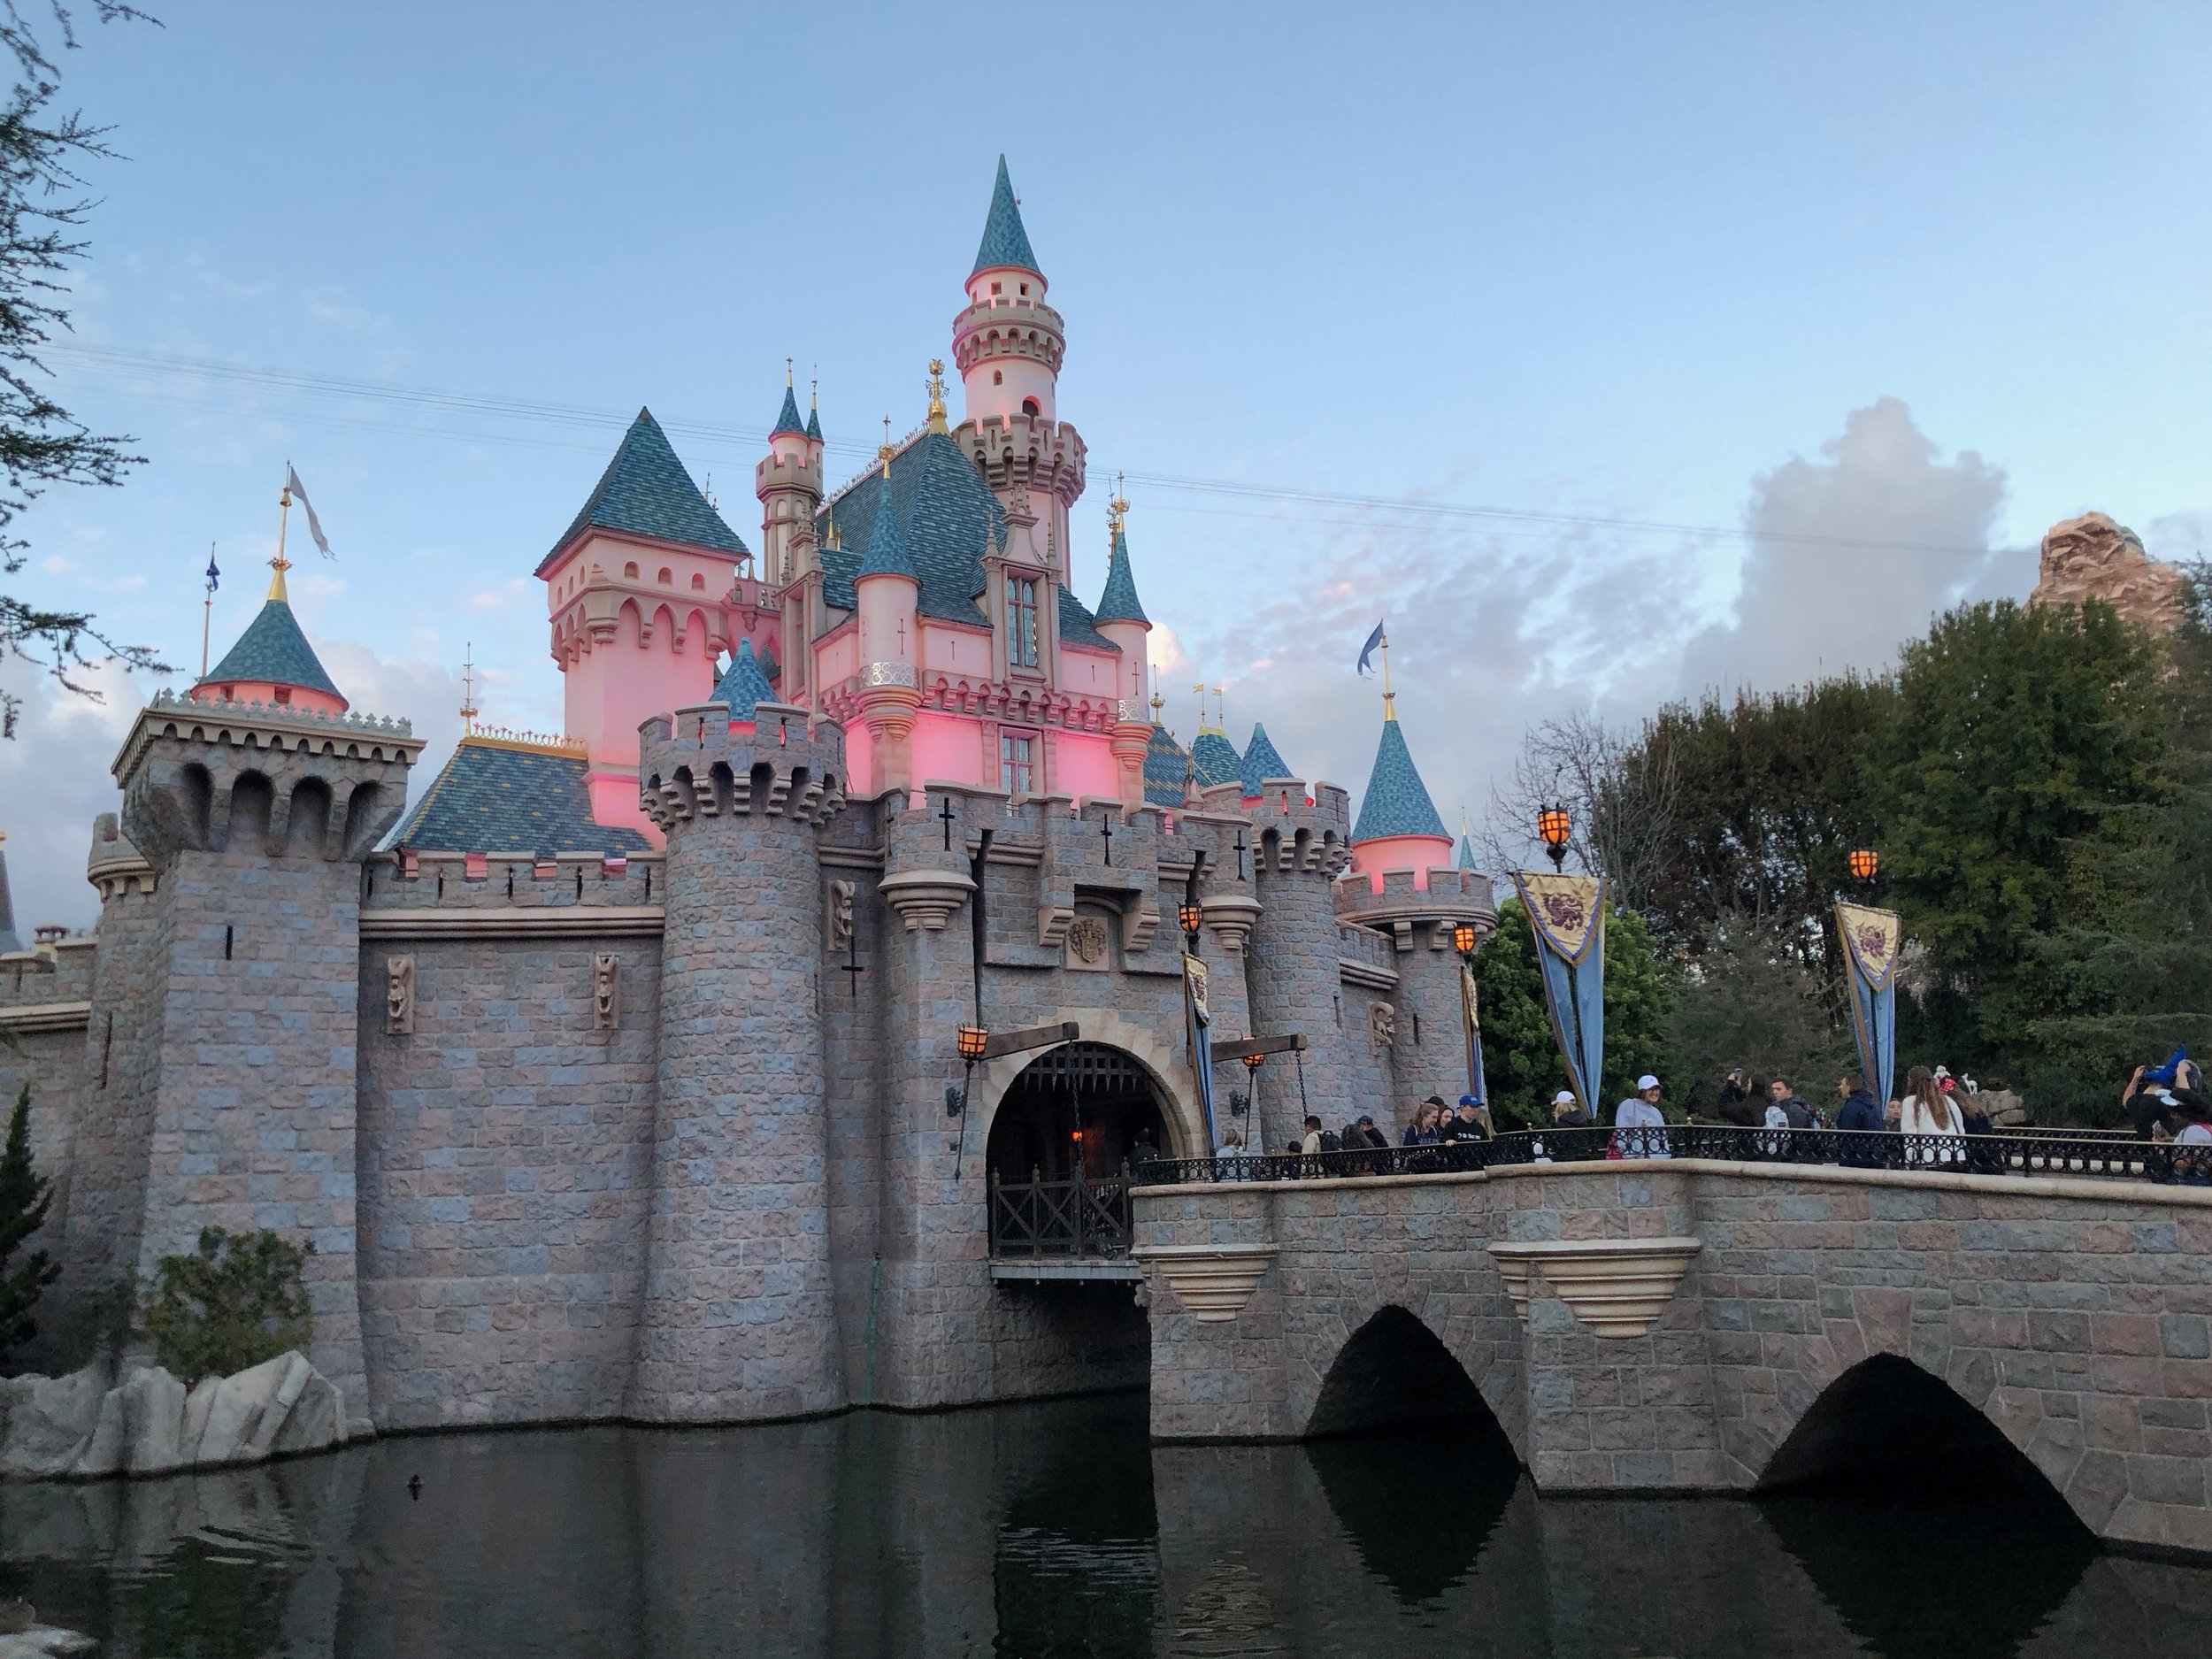 The Disneyland Castle with the native iPhone lens. (Click to enlarge.)